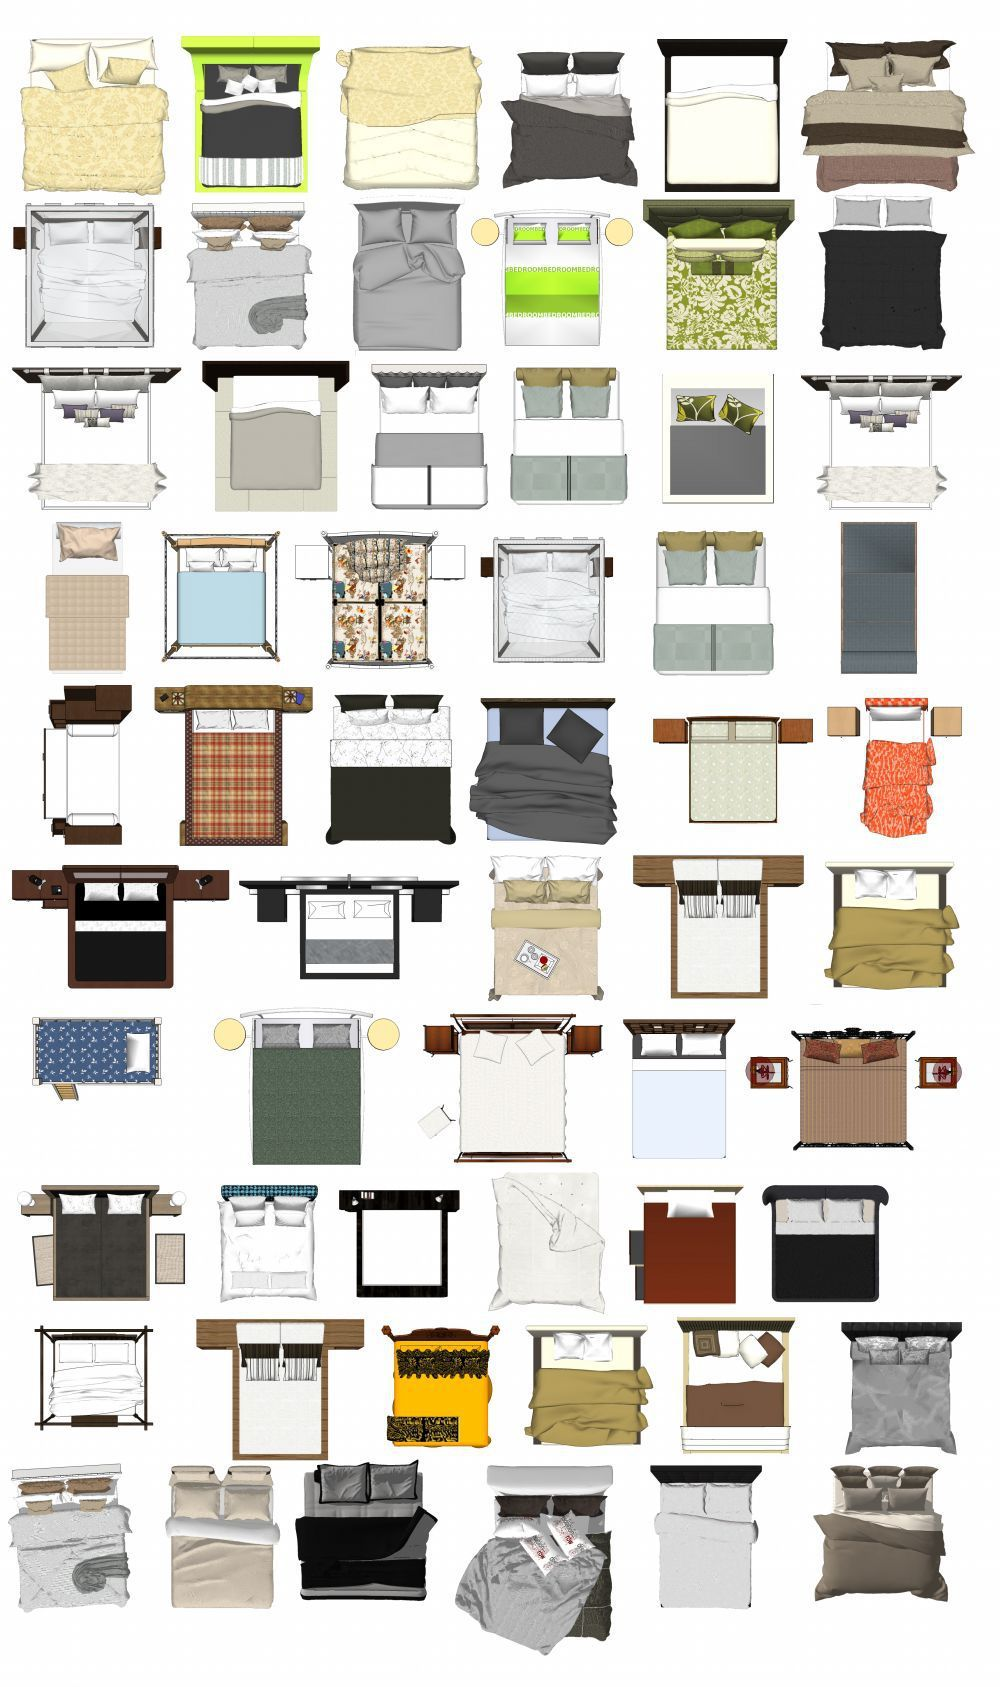 Free photoshop psd bed blocks 1 free cad blocks for Plan en 2d